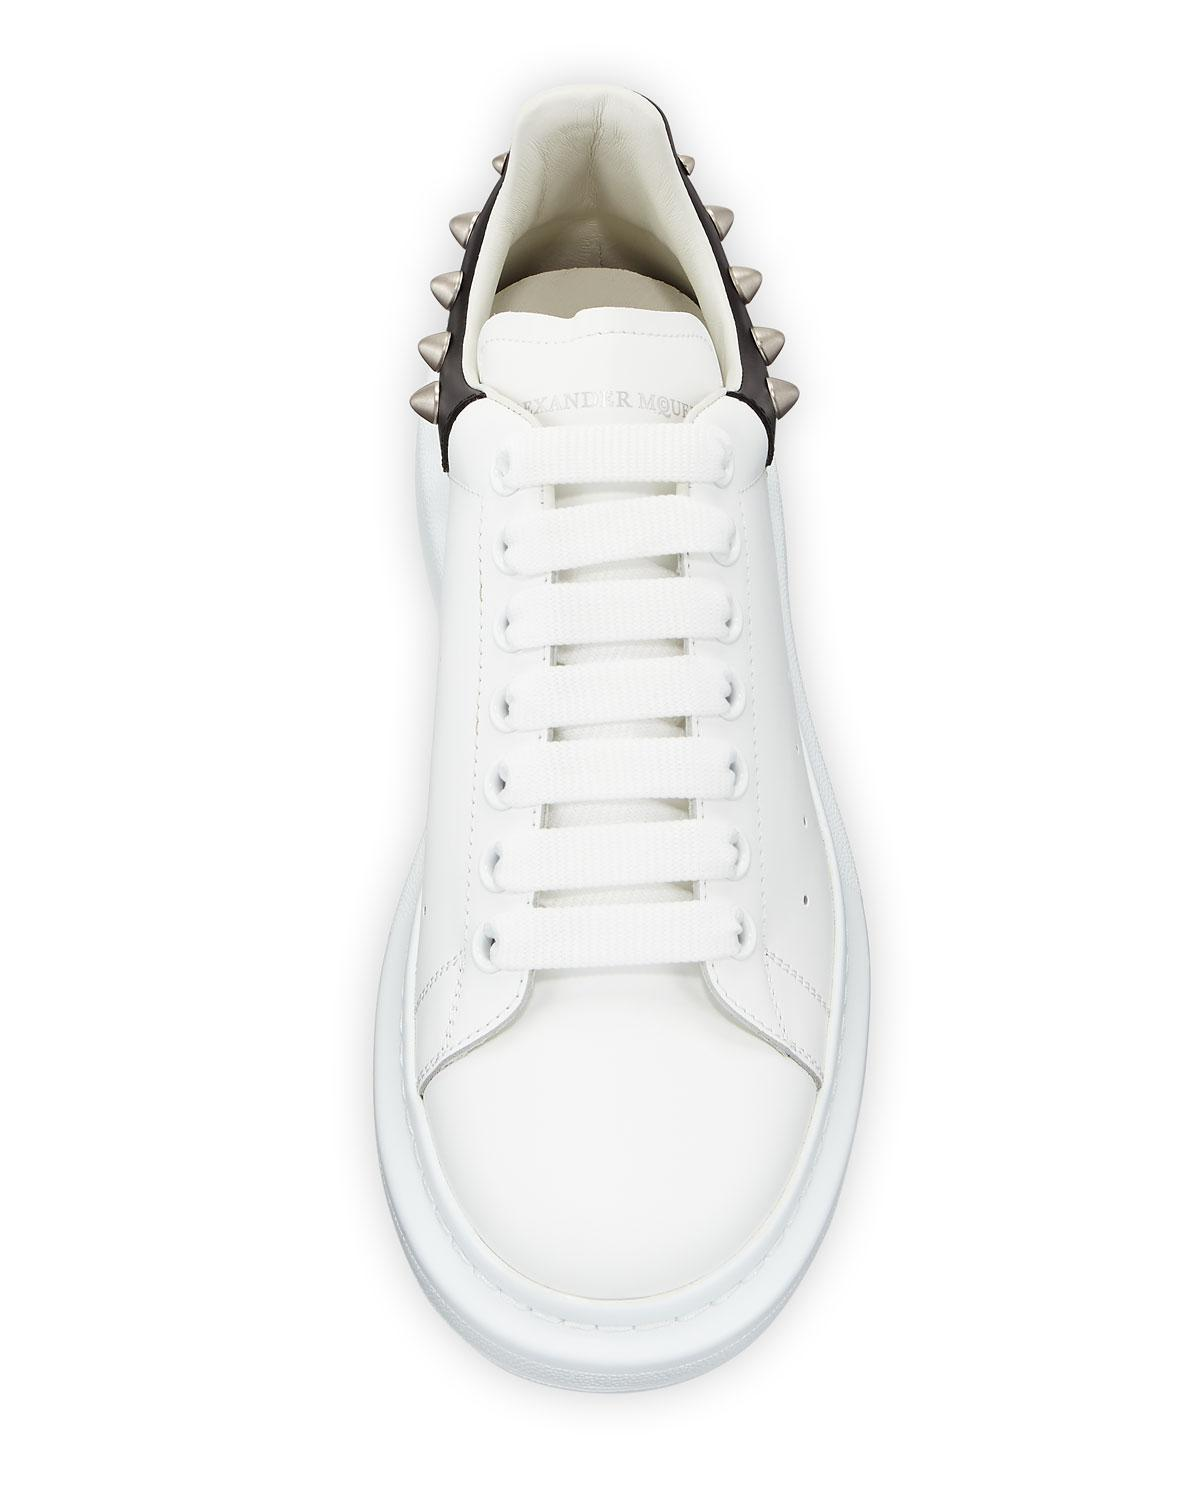 59b681f17d8b Alexander McQueen Men s Larry Leather Lace-up Platform Sneakers With Spiked  Trim in White - Lyst